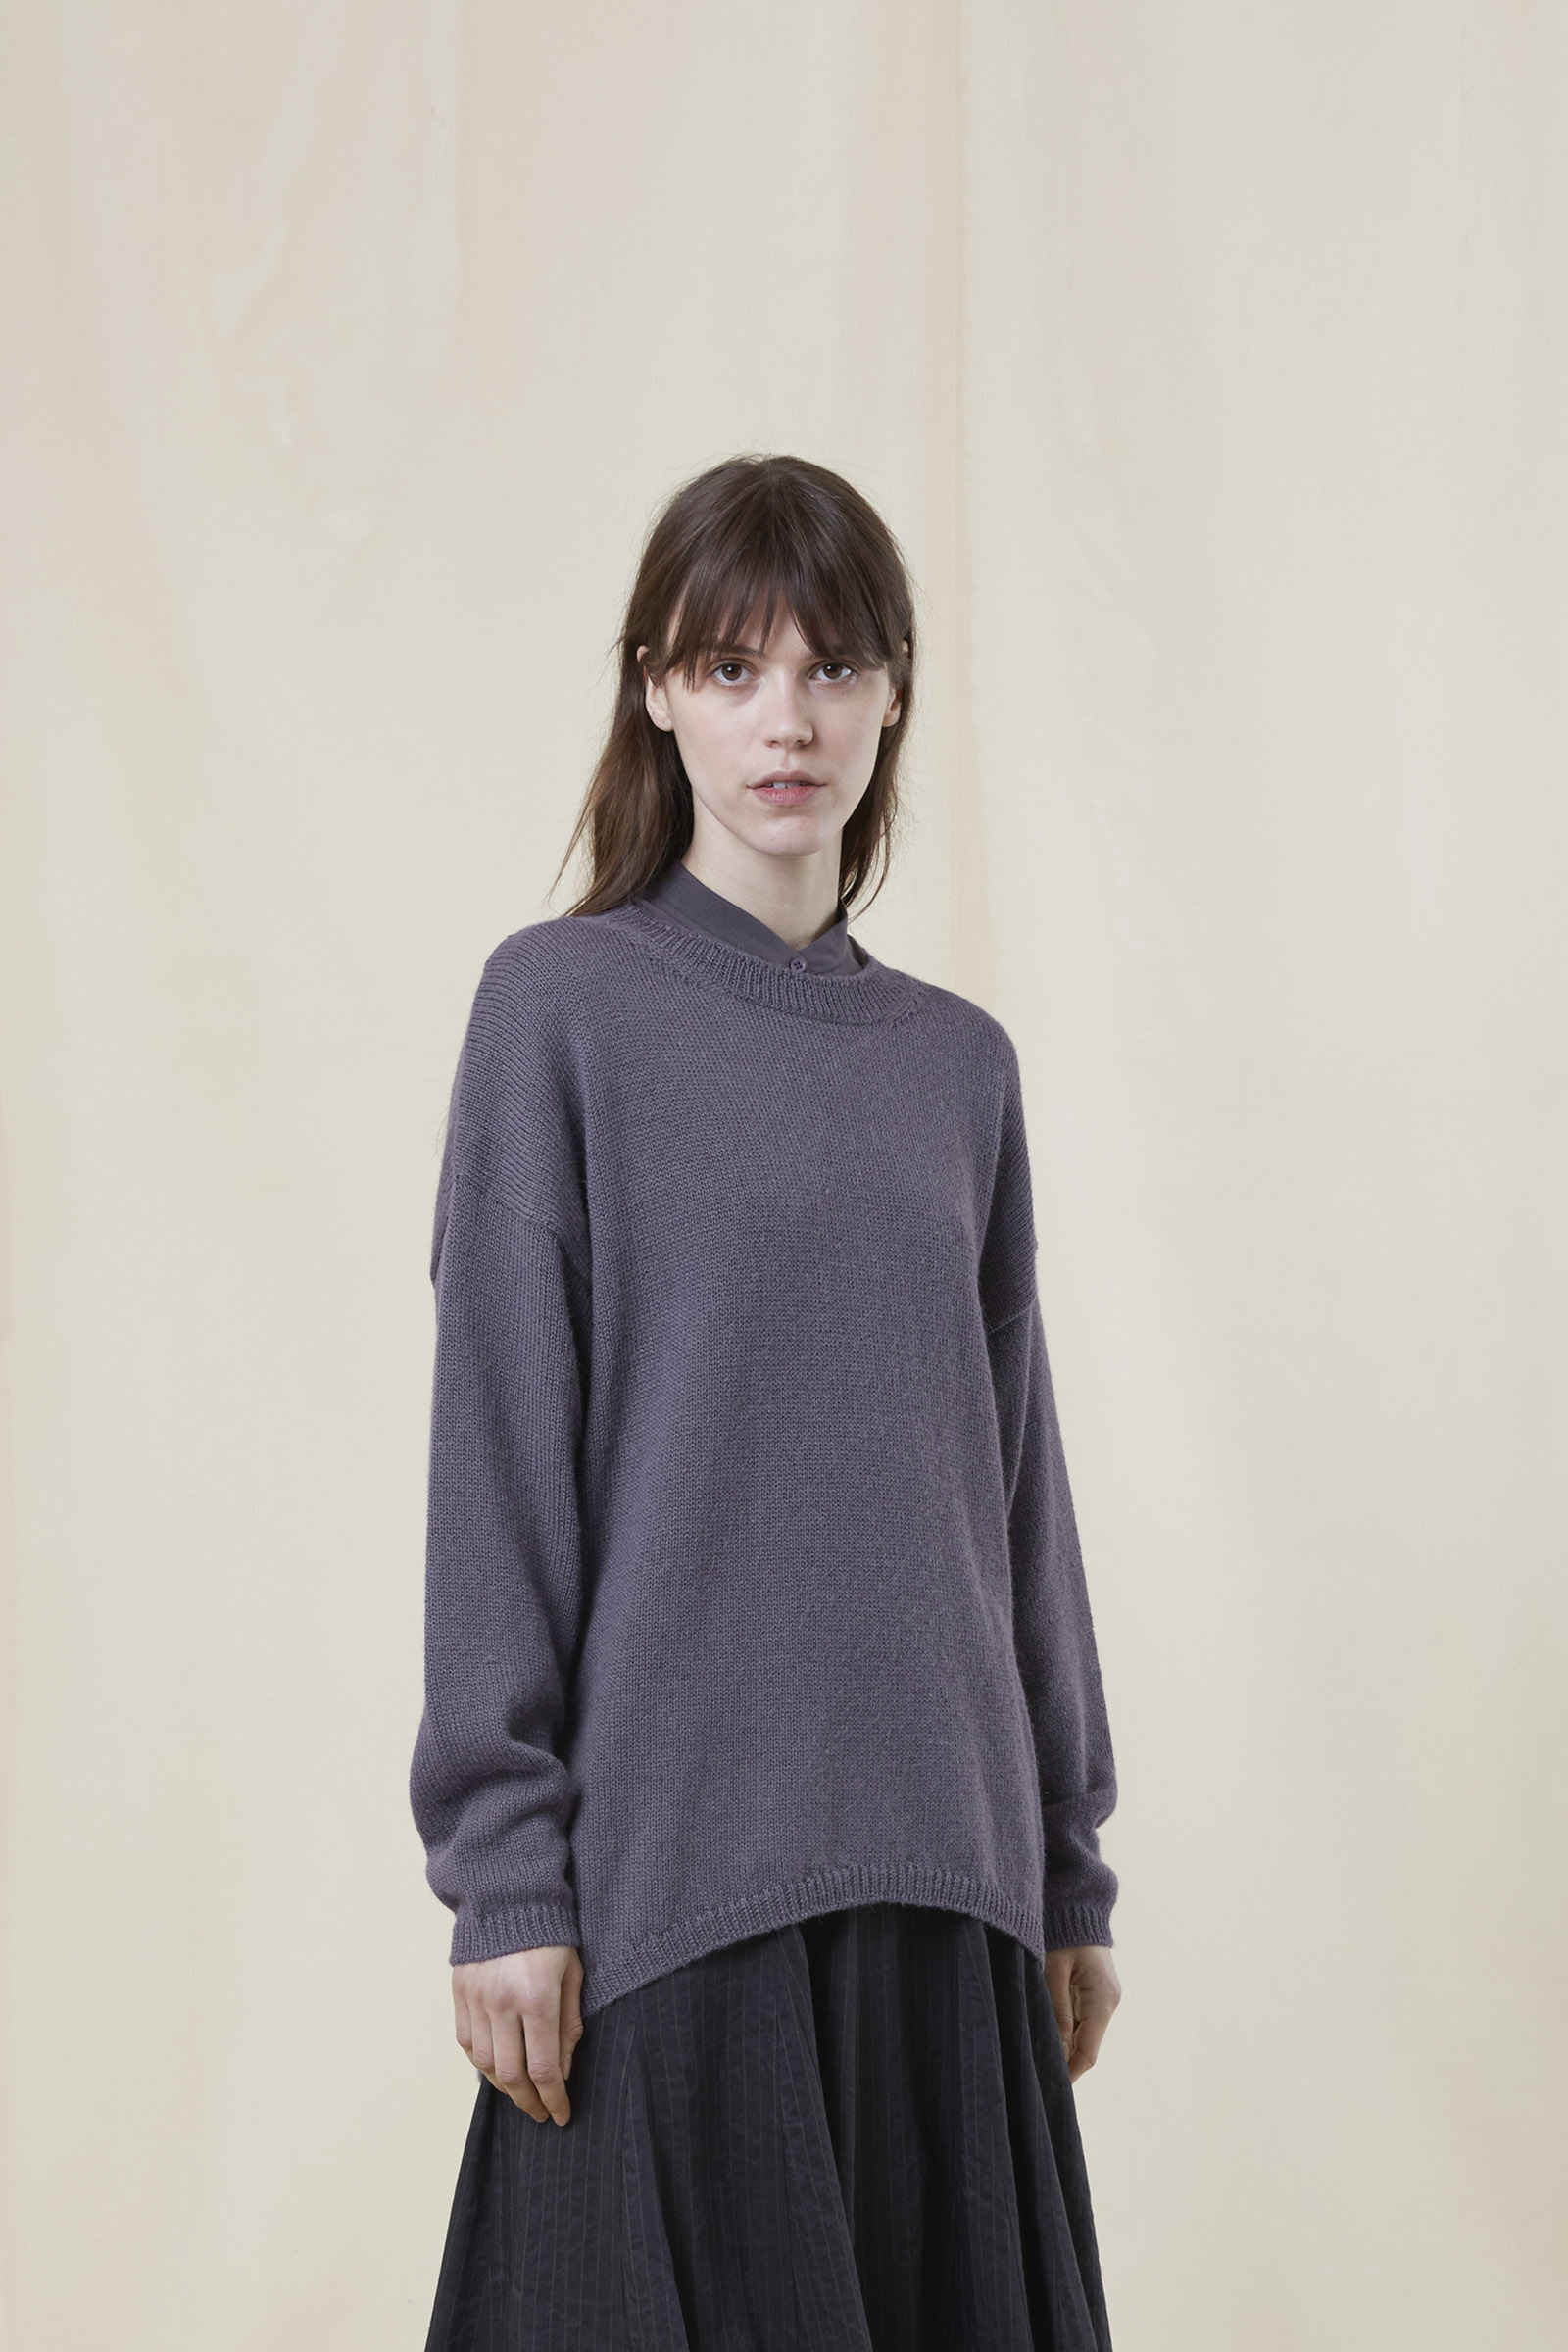 TED, LAVENDER PULLOVER - Cortana